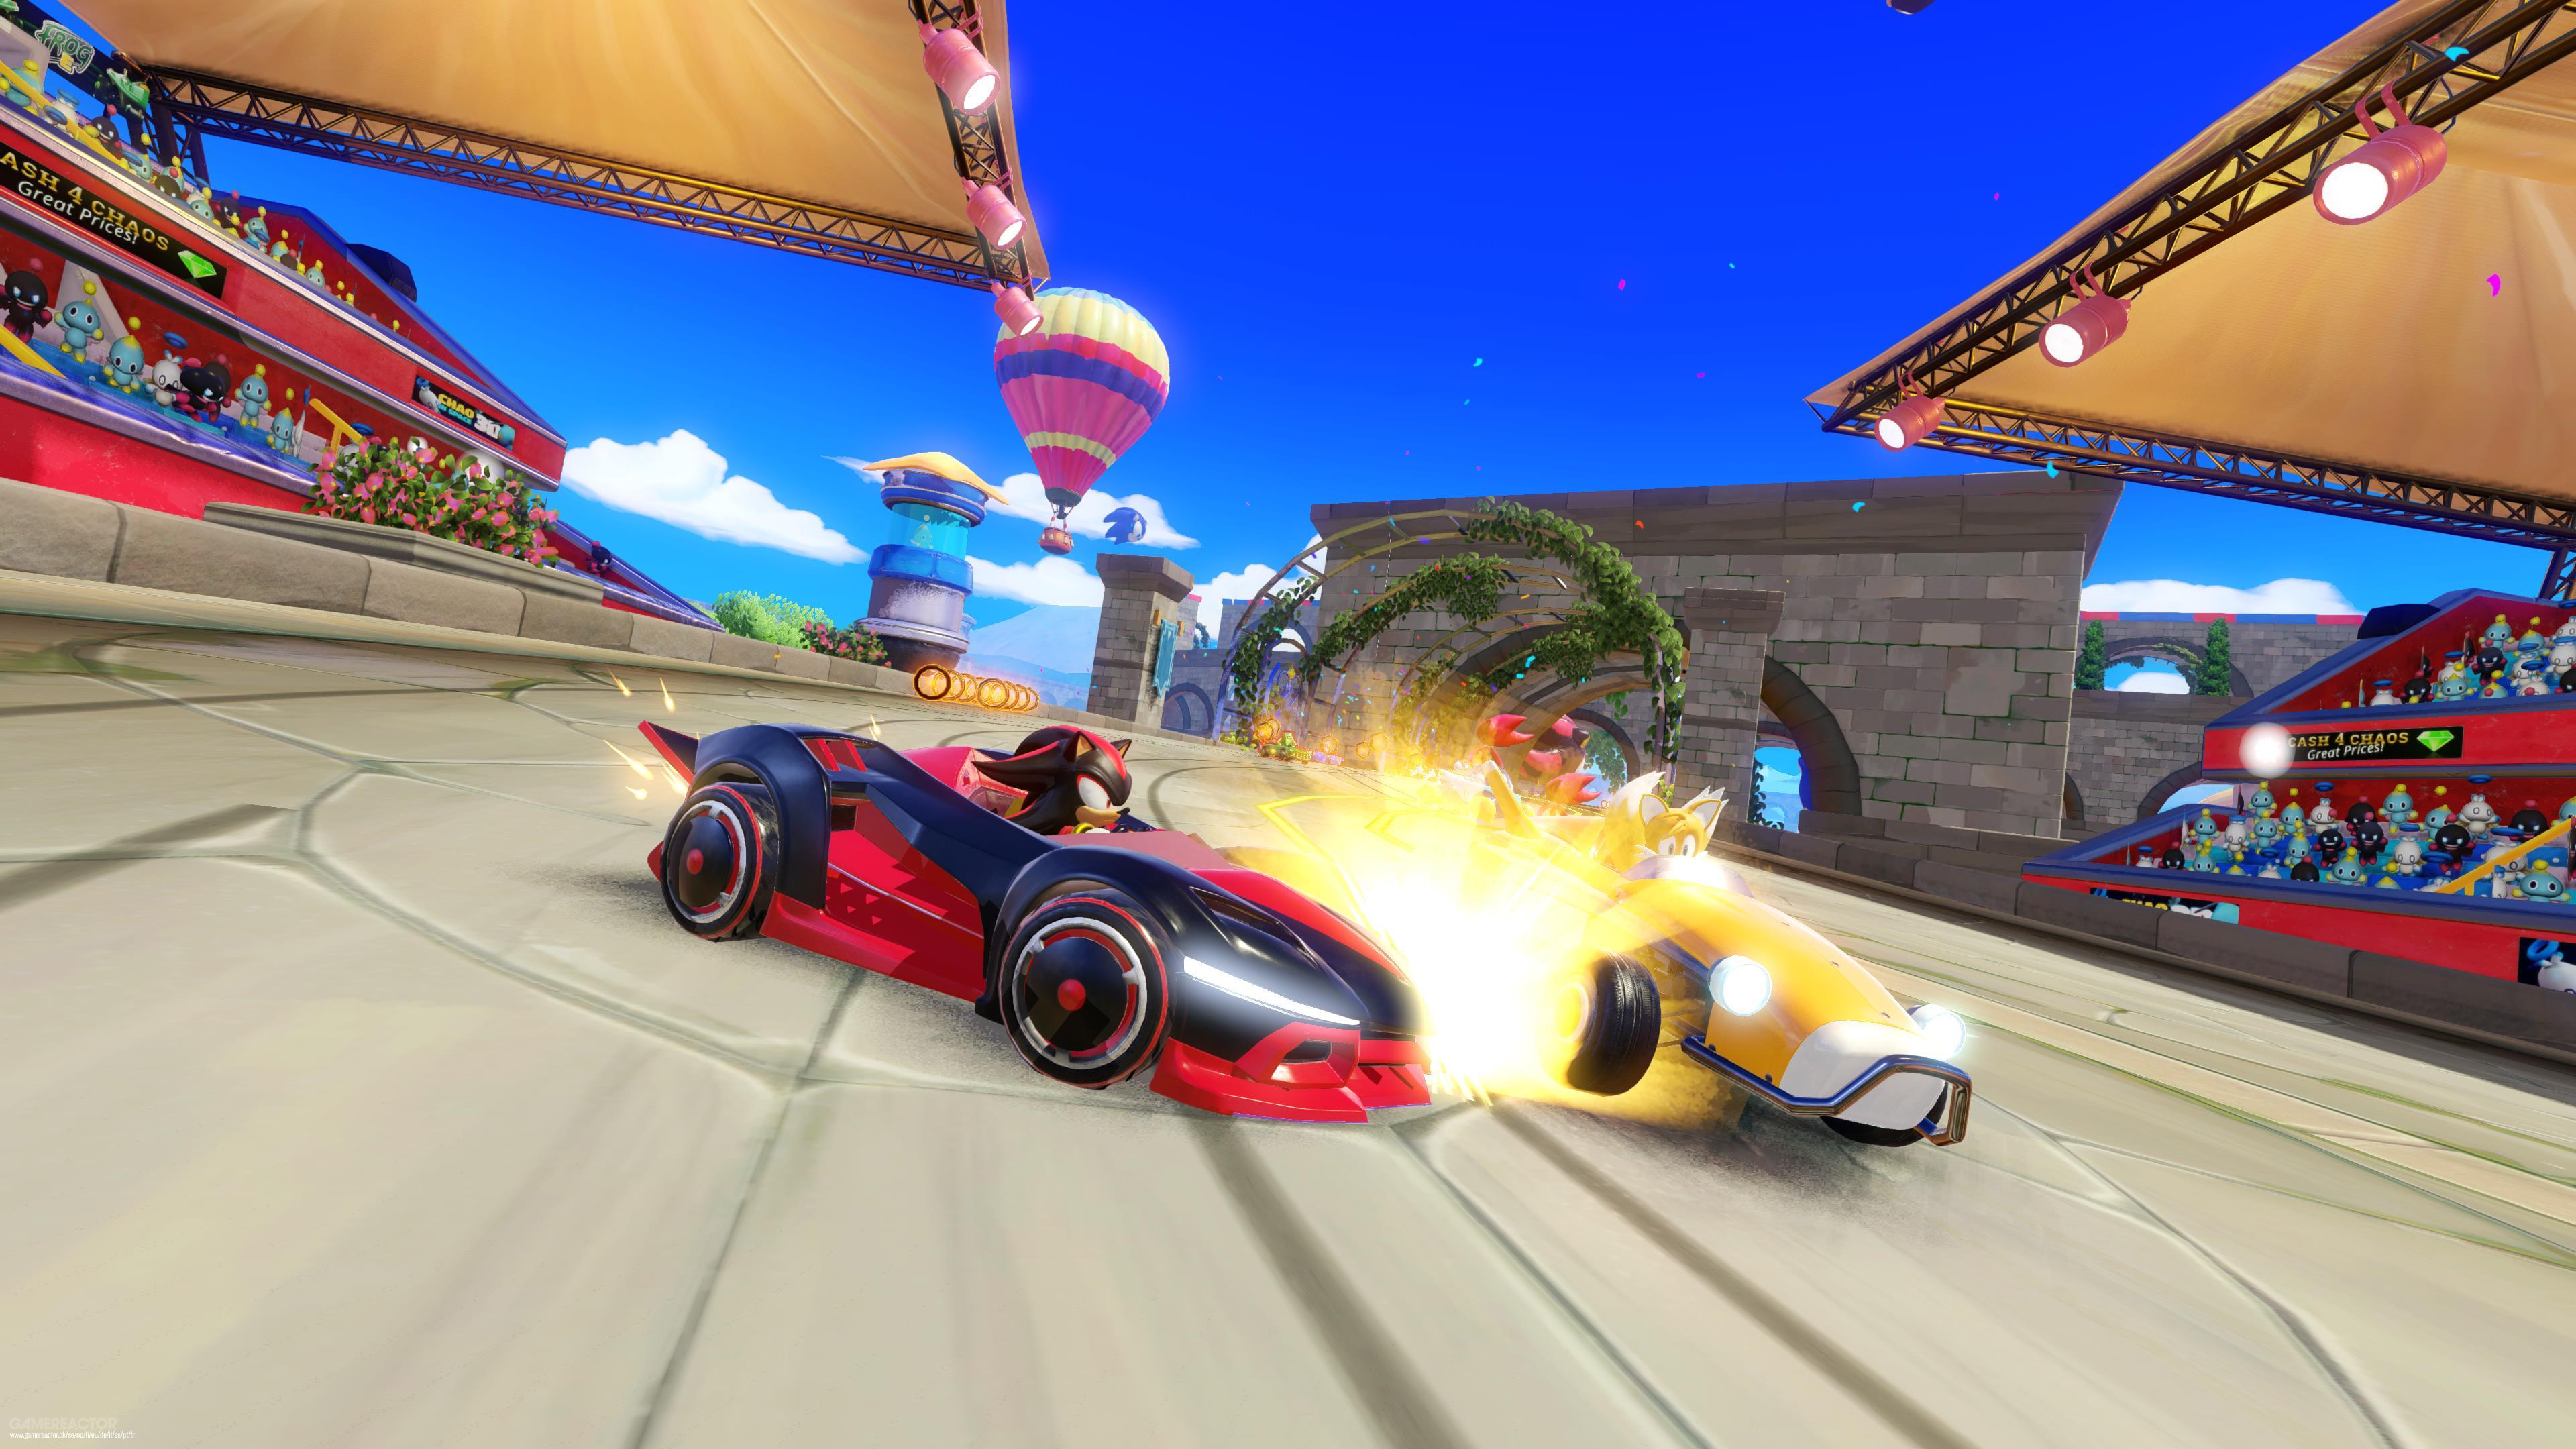 Team Sonic Racing will not have any special features on Switch, all versions to be equal screenshot